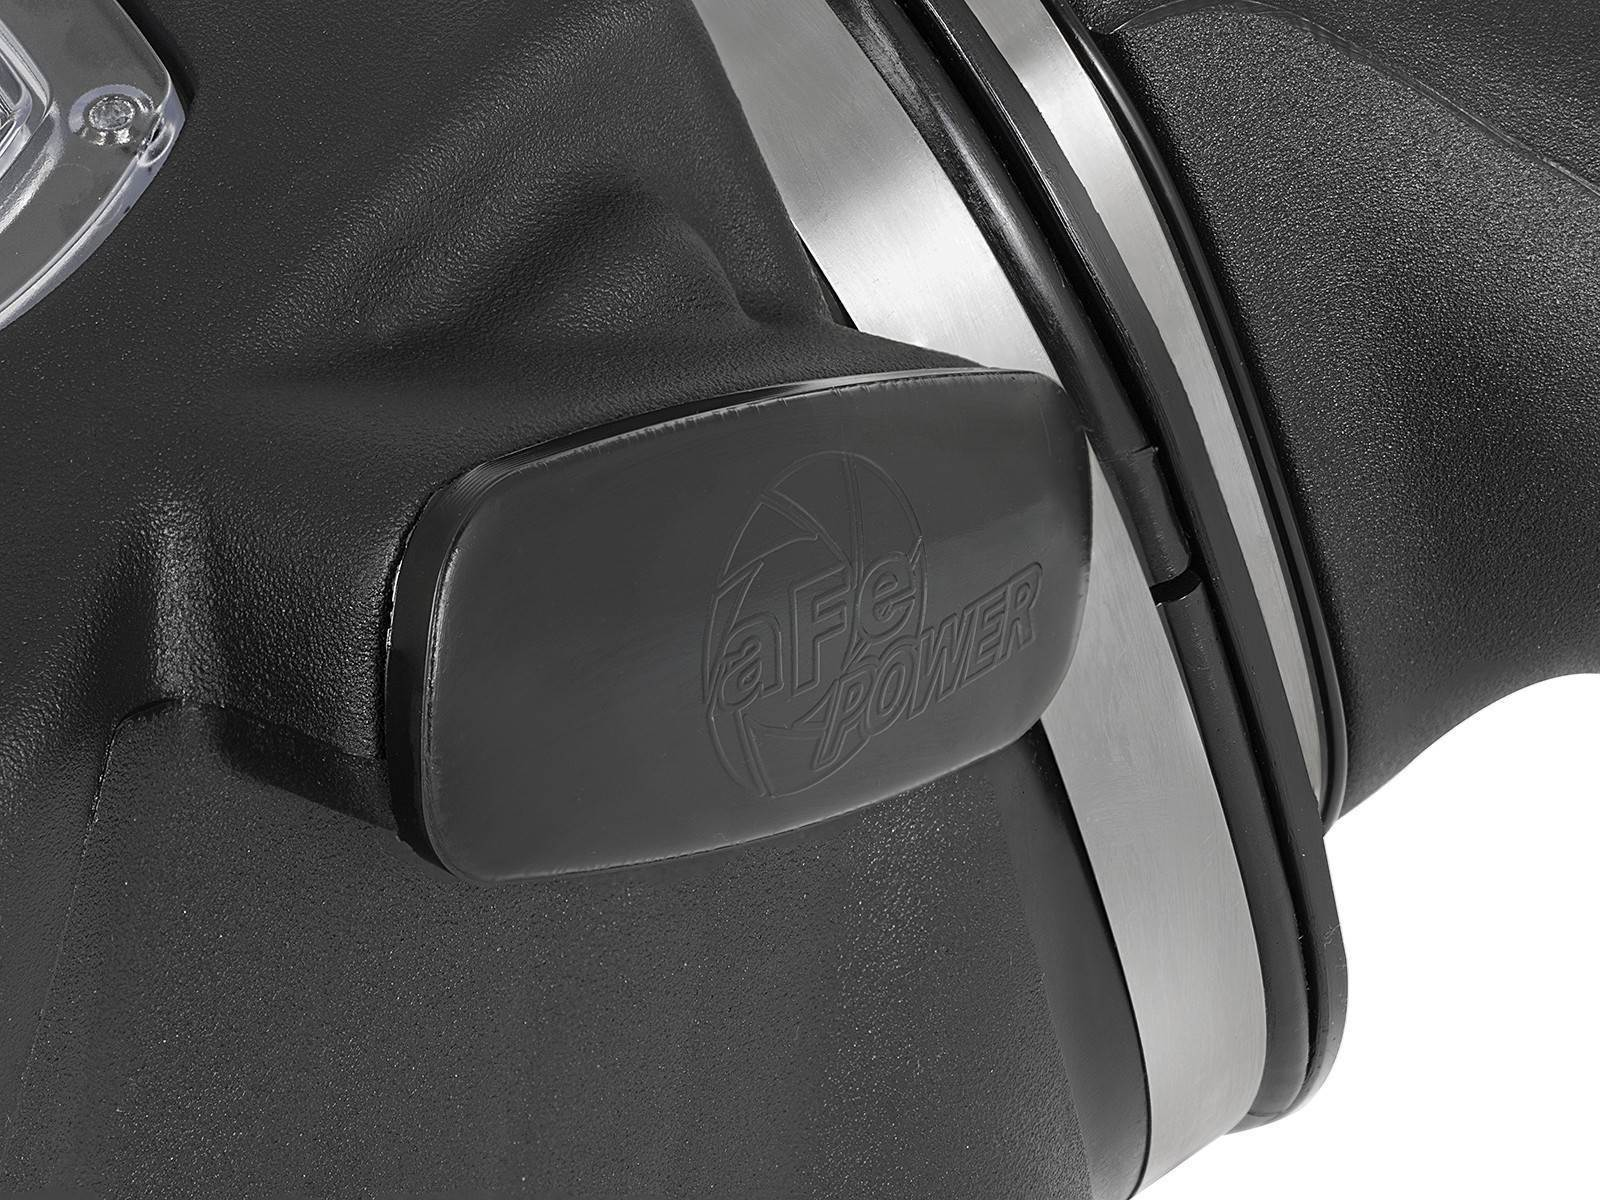 51-73006 - aFE Momentum HD Cold Air Intake System - Pro Dry S for 2017-2018 Ford Powerstroke 6.7L diesels